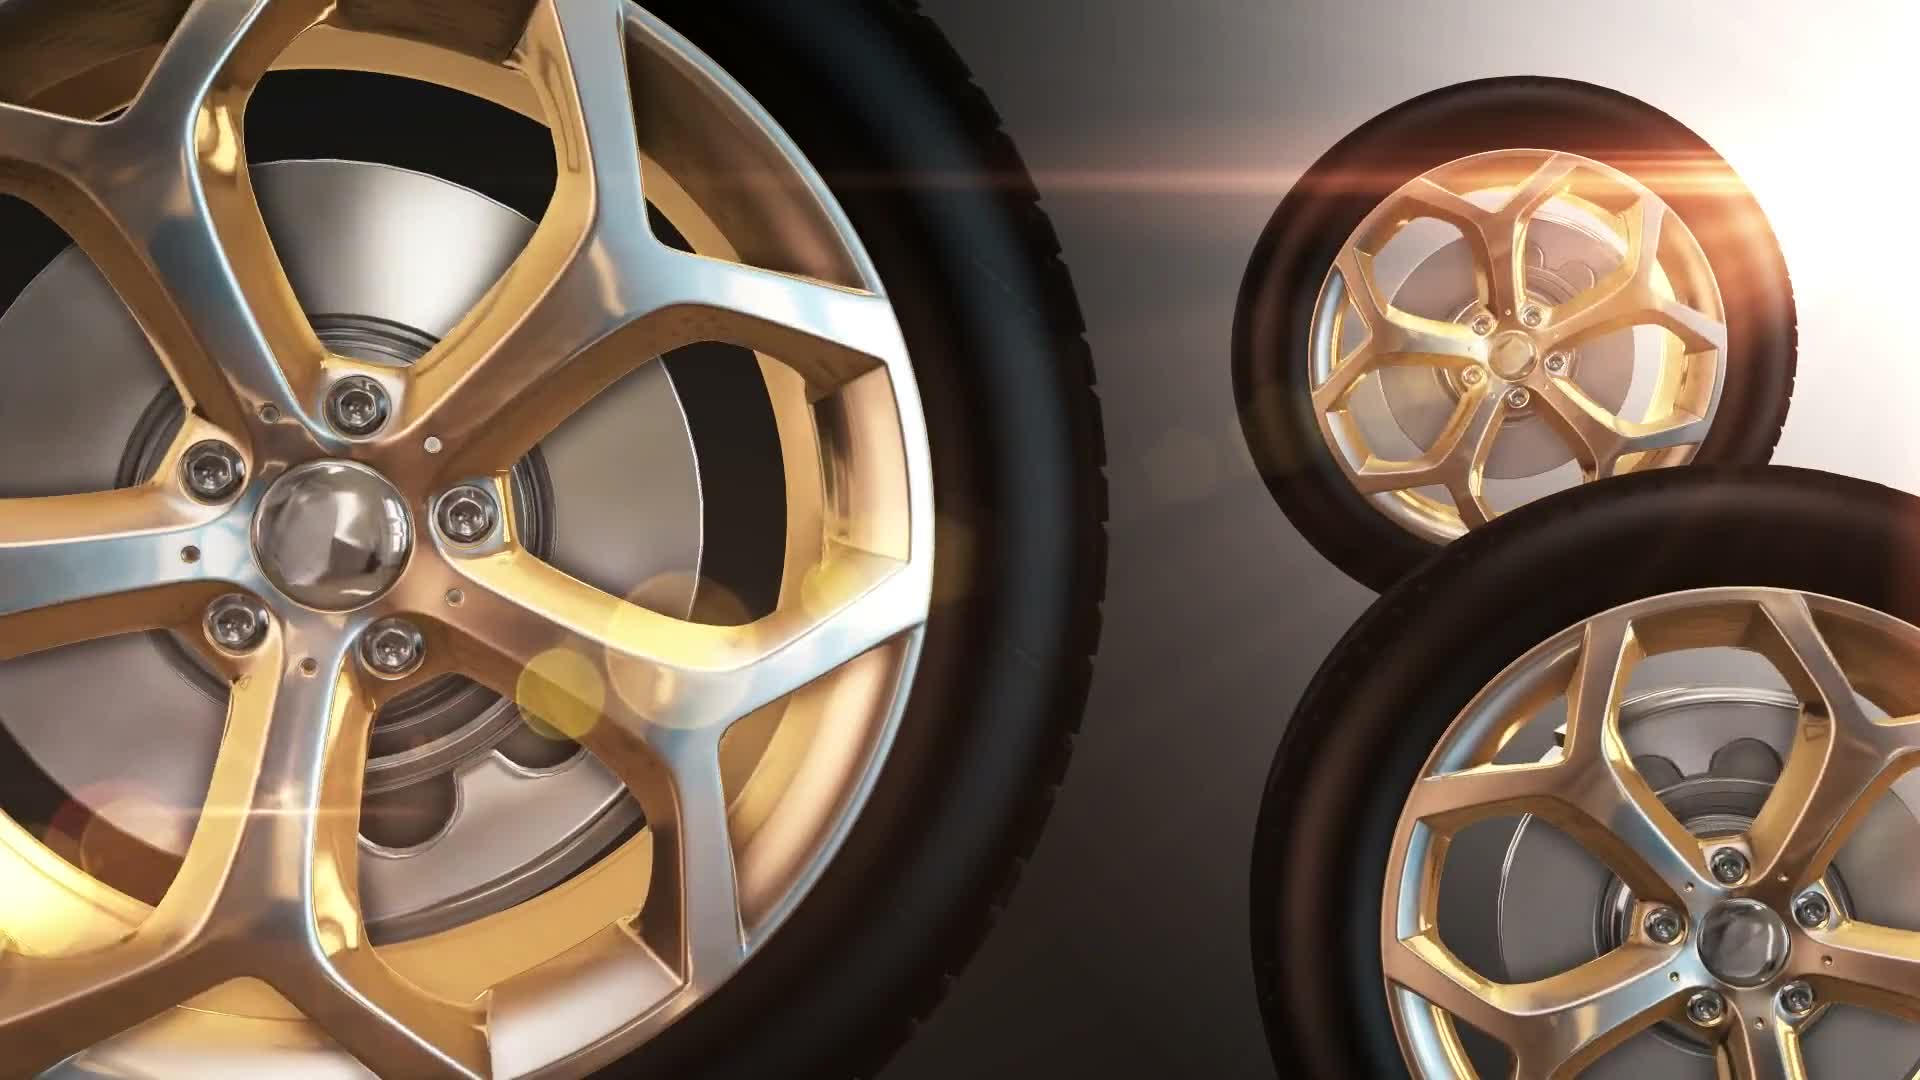 Car wheels golden tires rotation